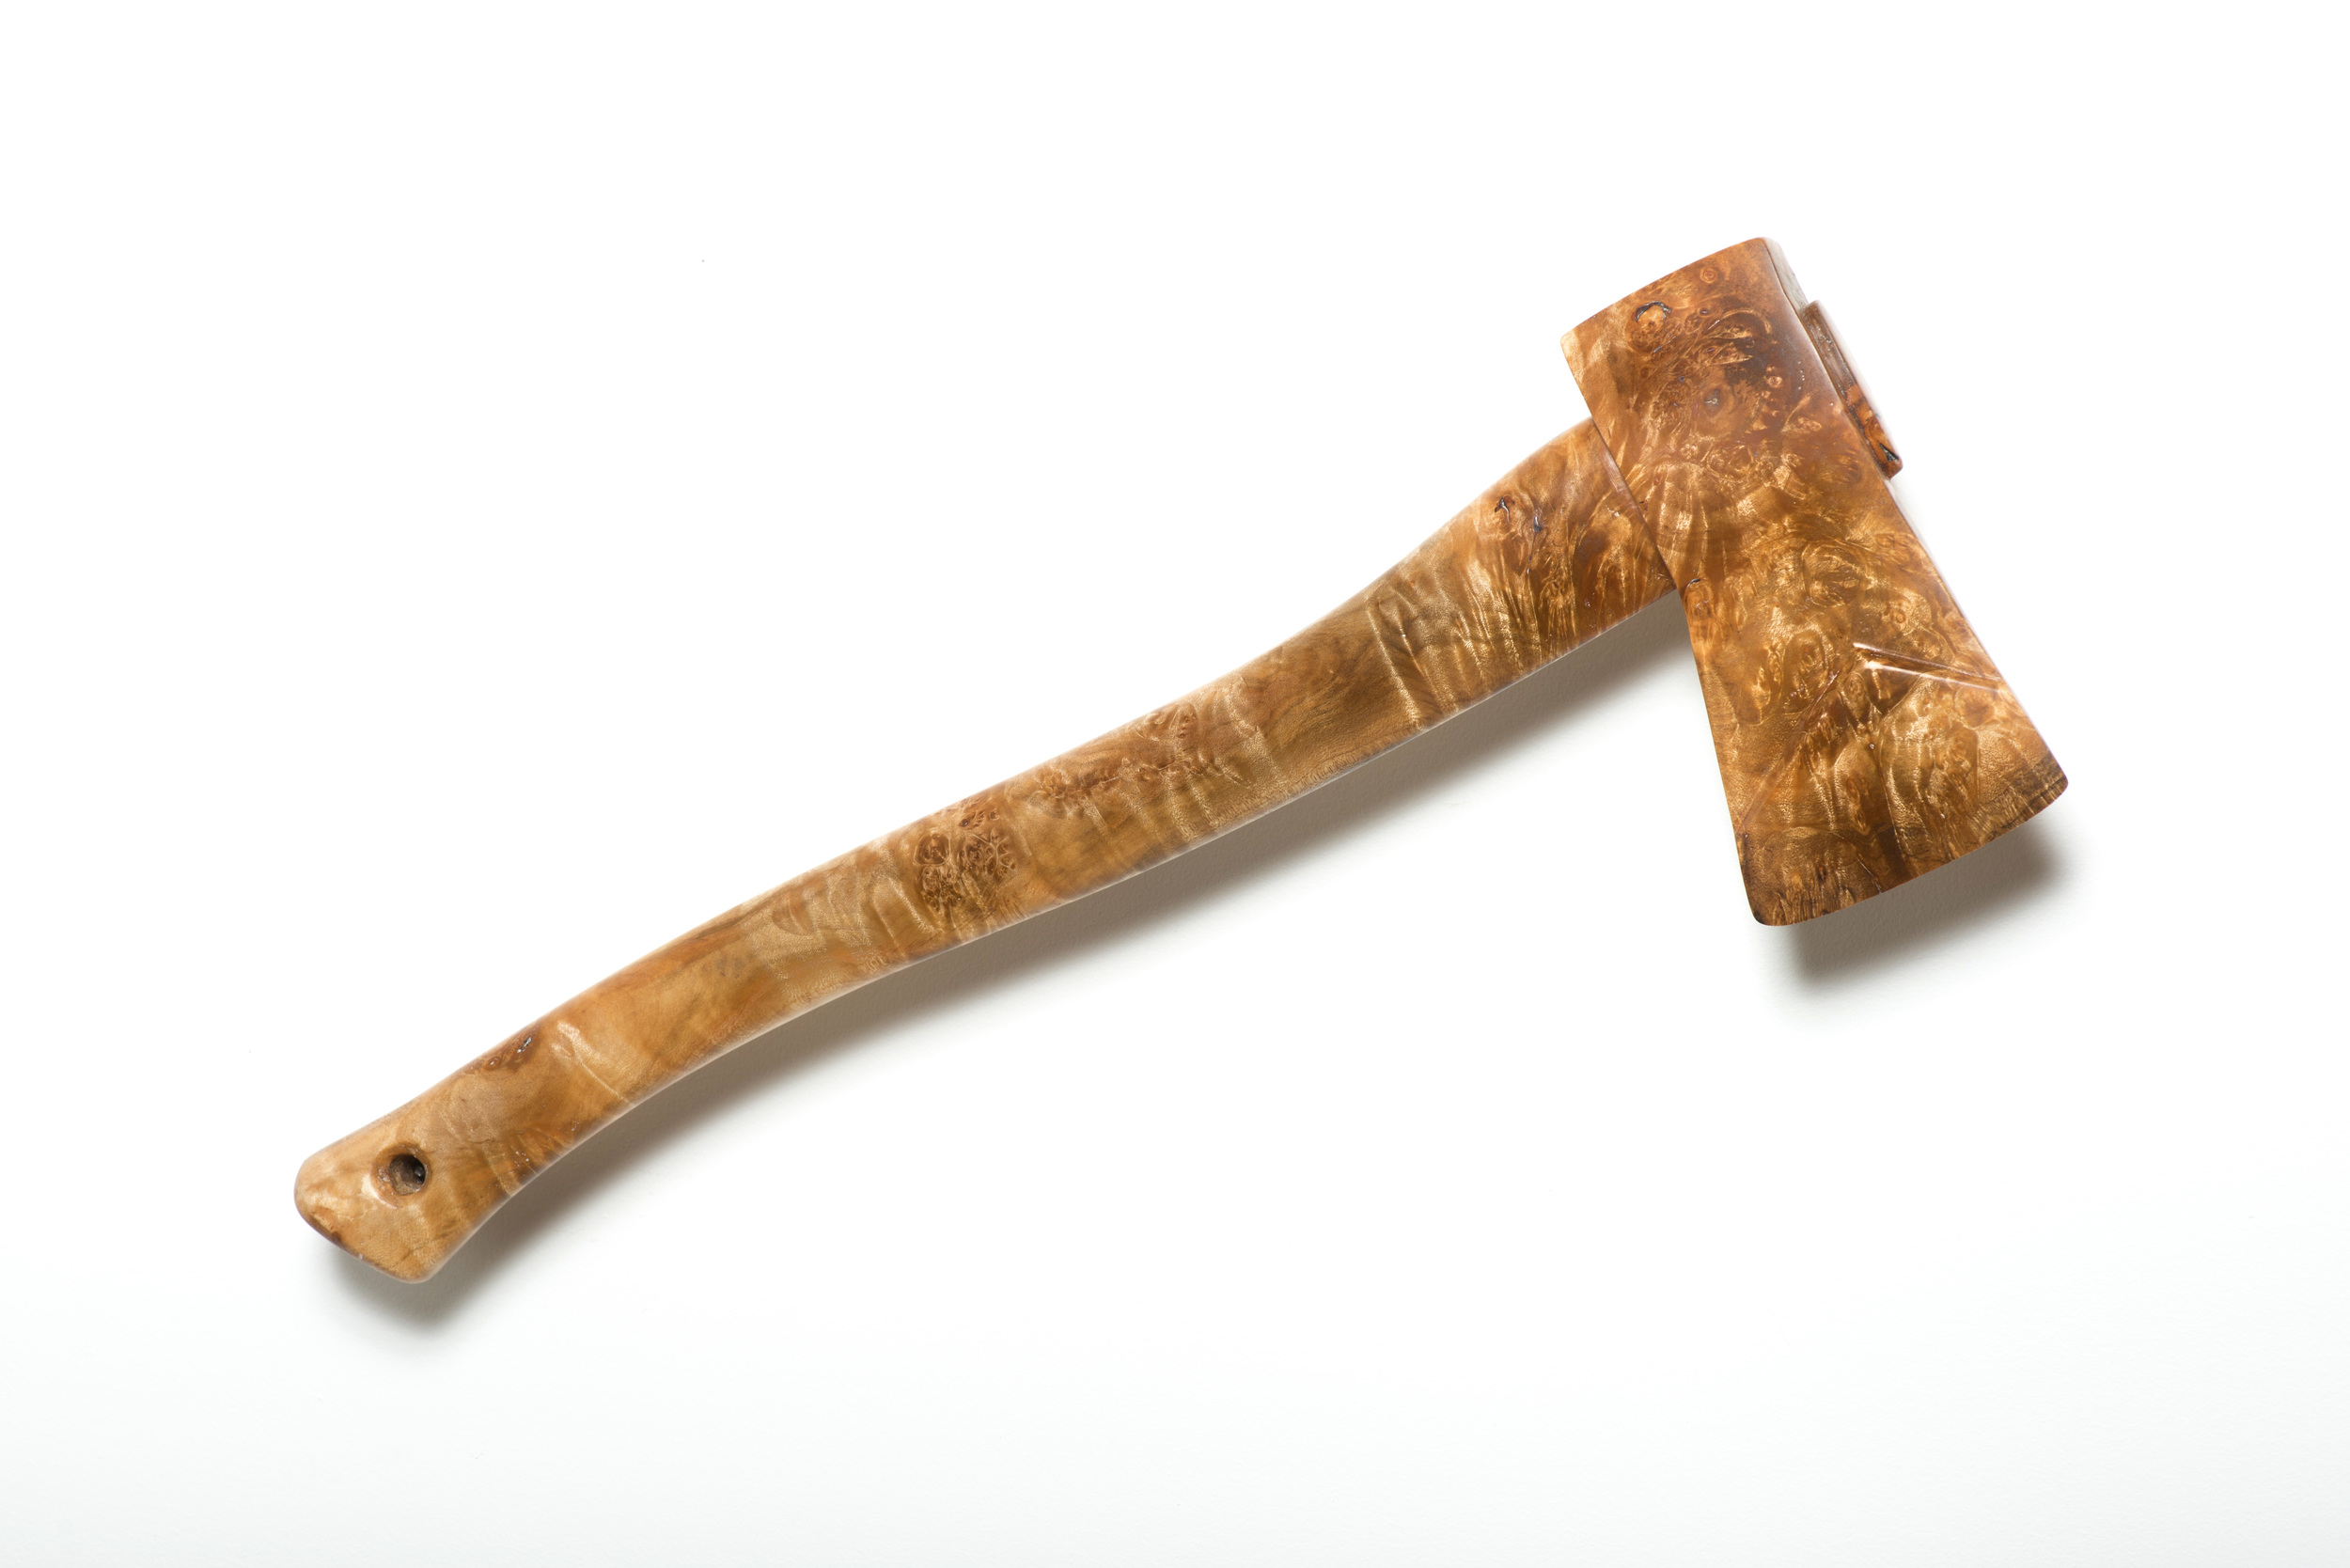 Axe,maple2:3.jpg